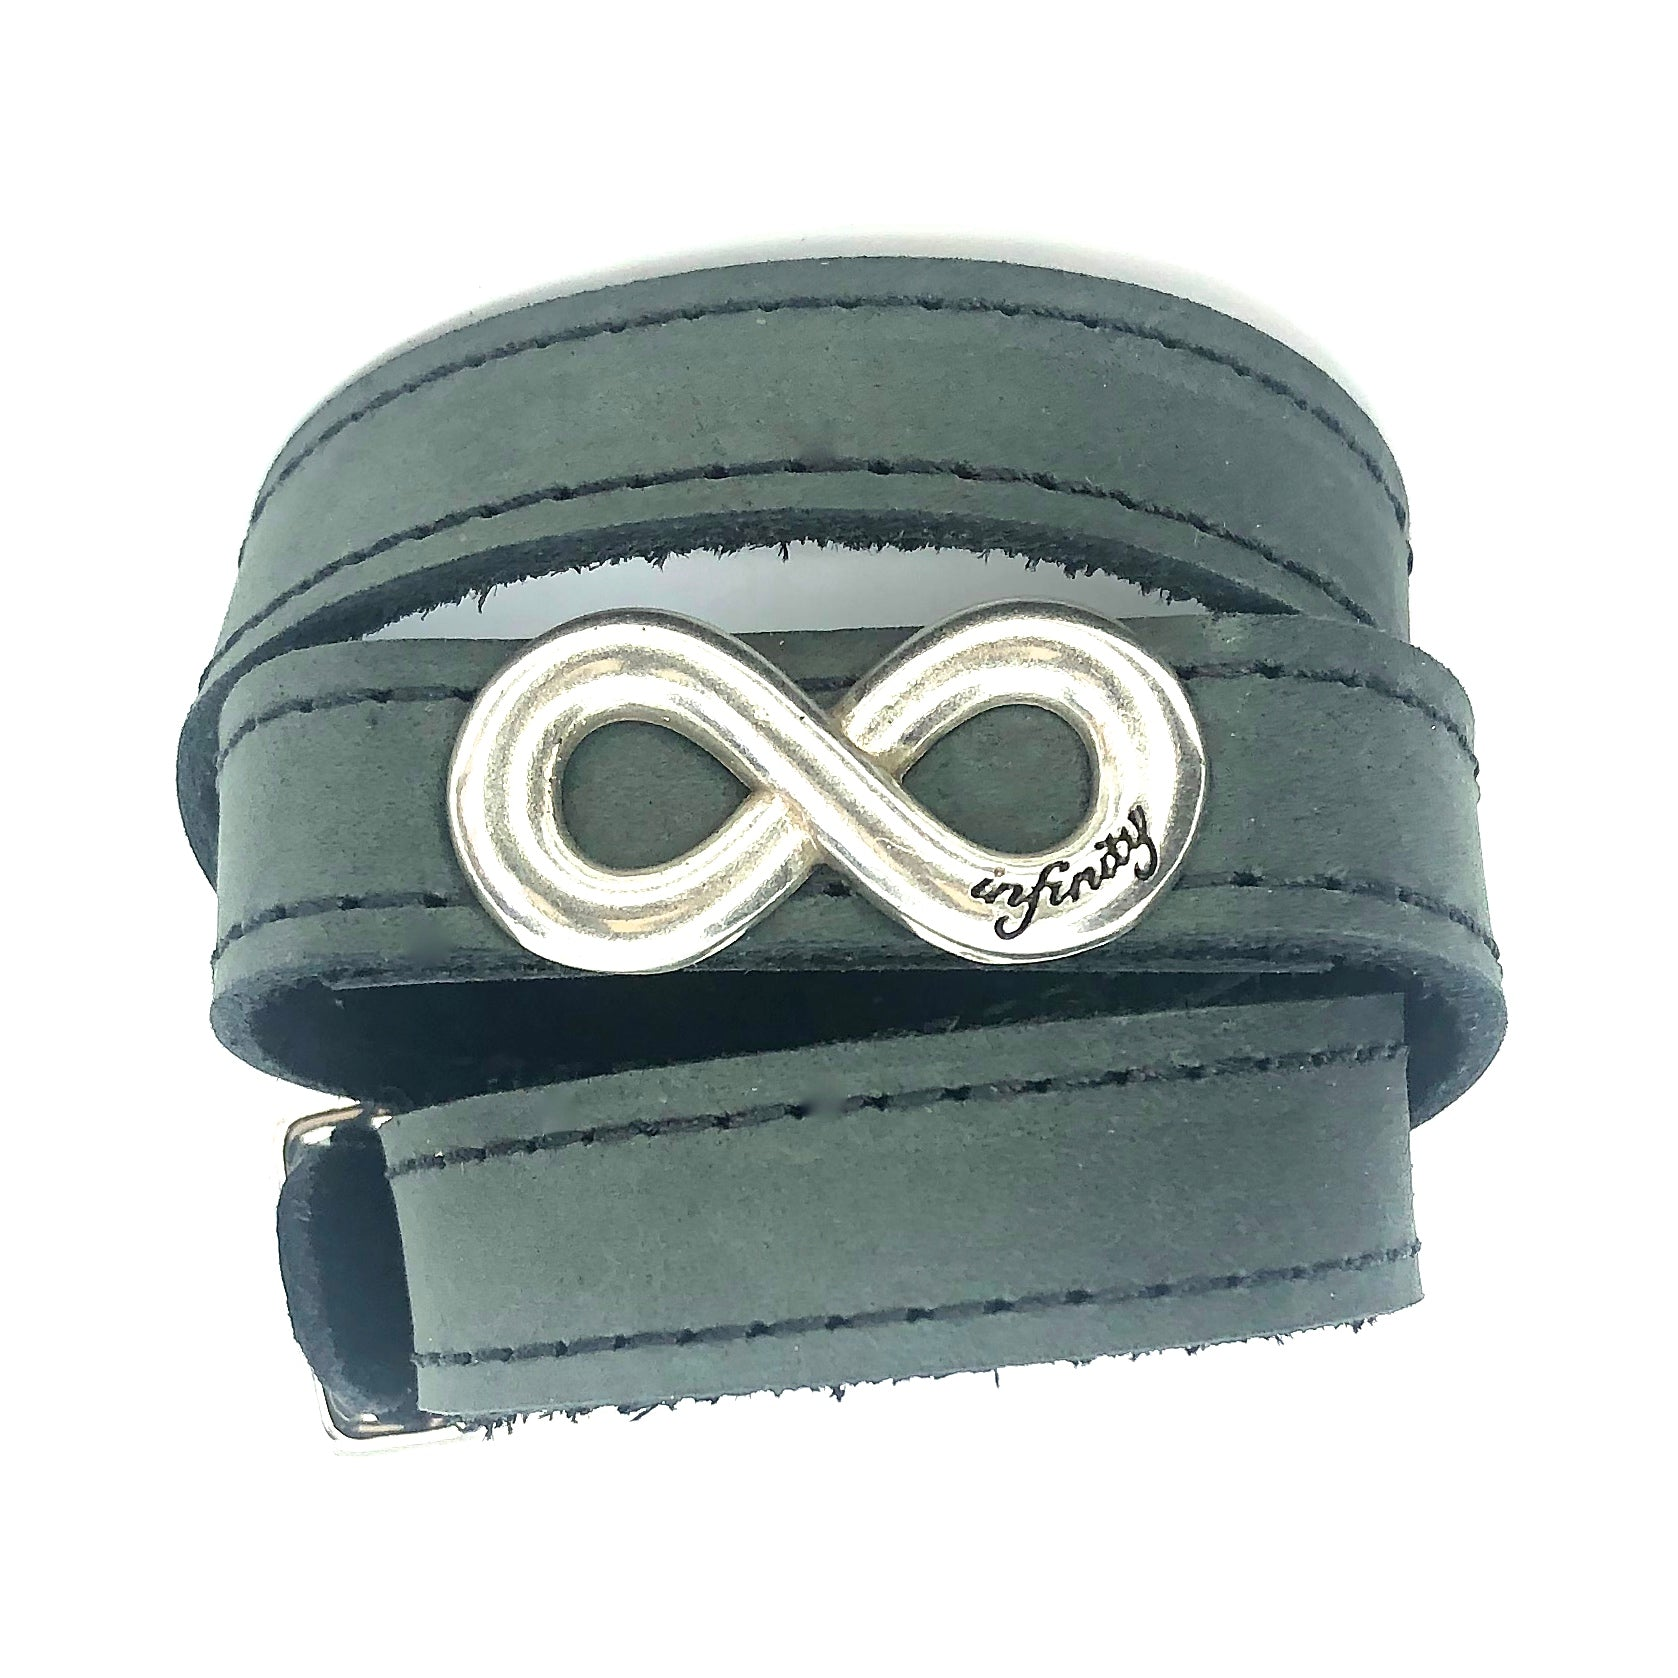 WRAPAROUND STITCHED LEATHER BRACELET WITH INFINITY CONCHO by nyet jewelry